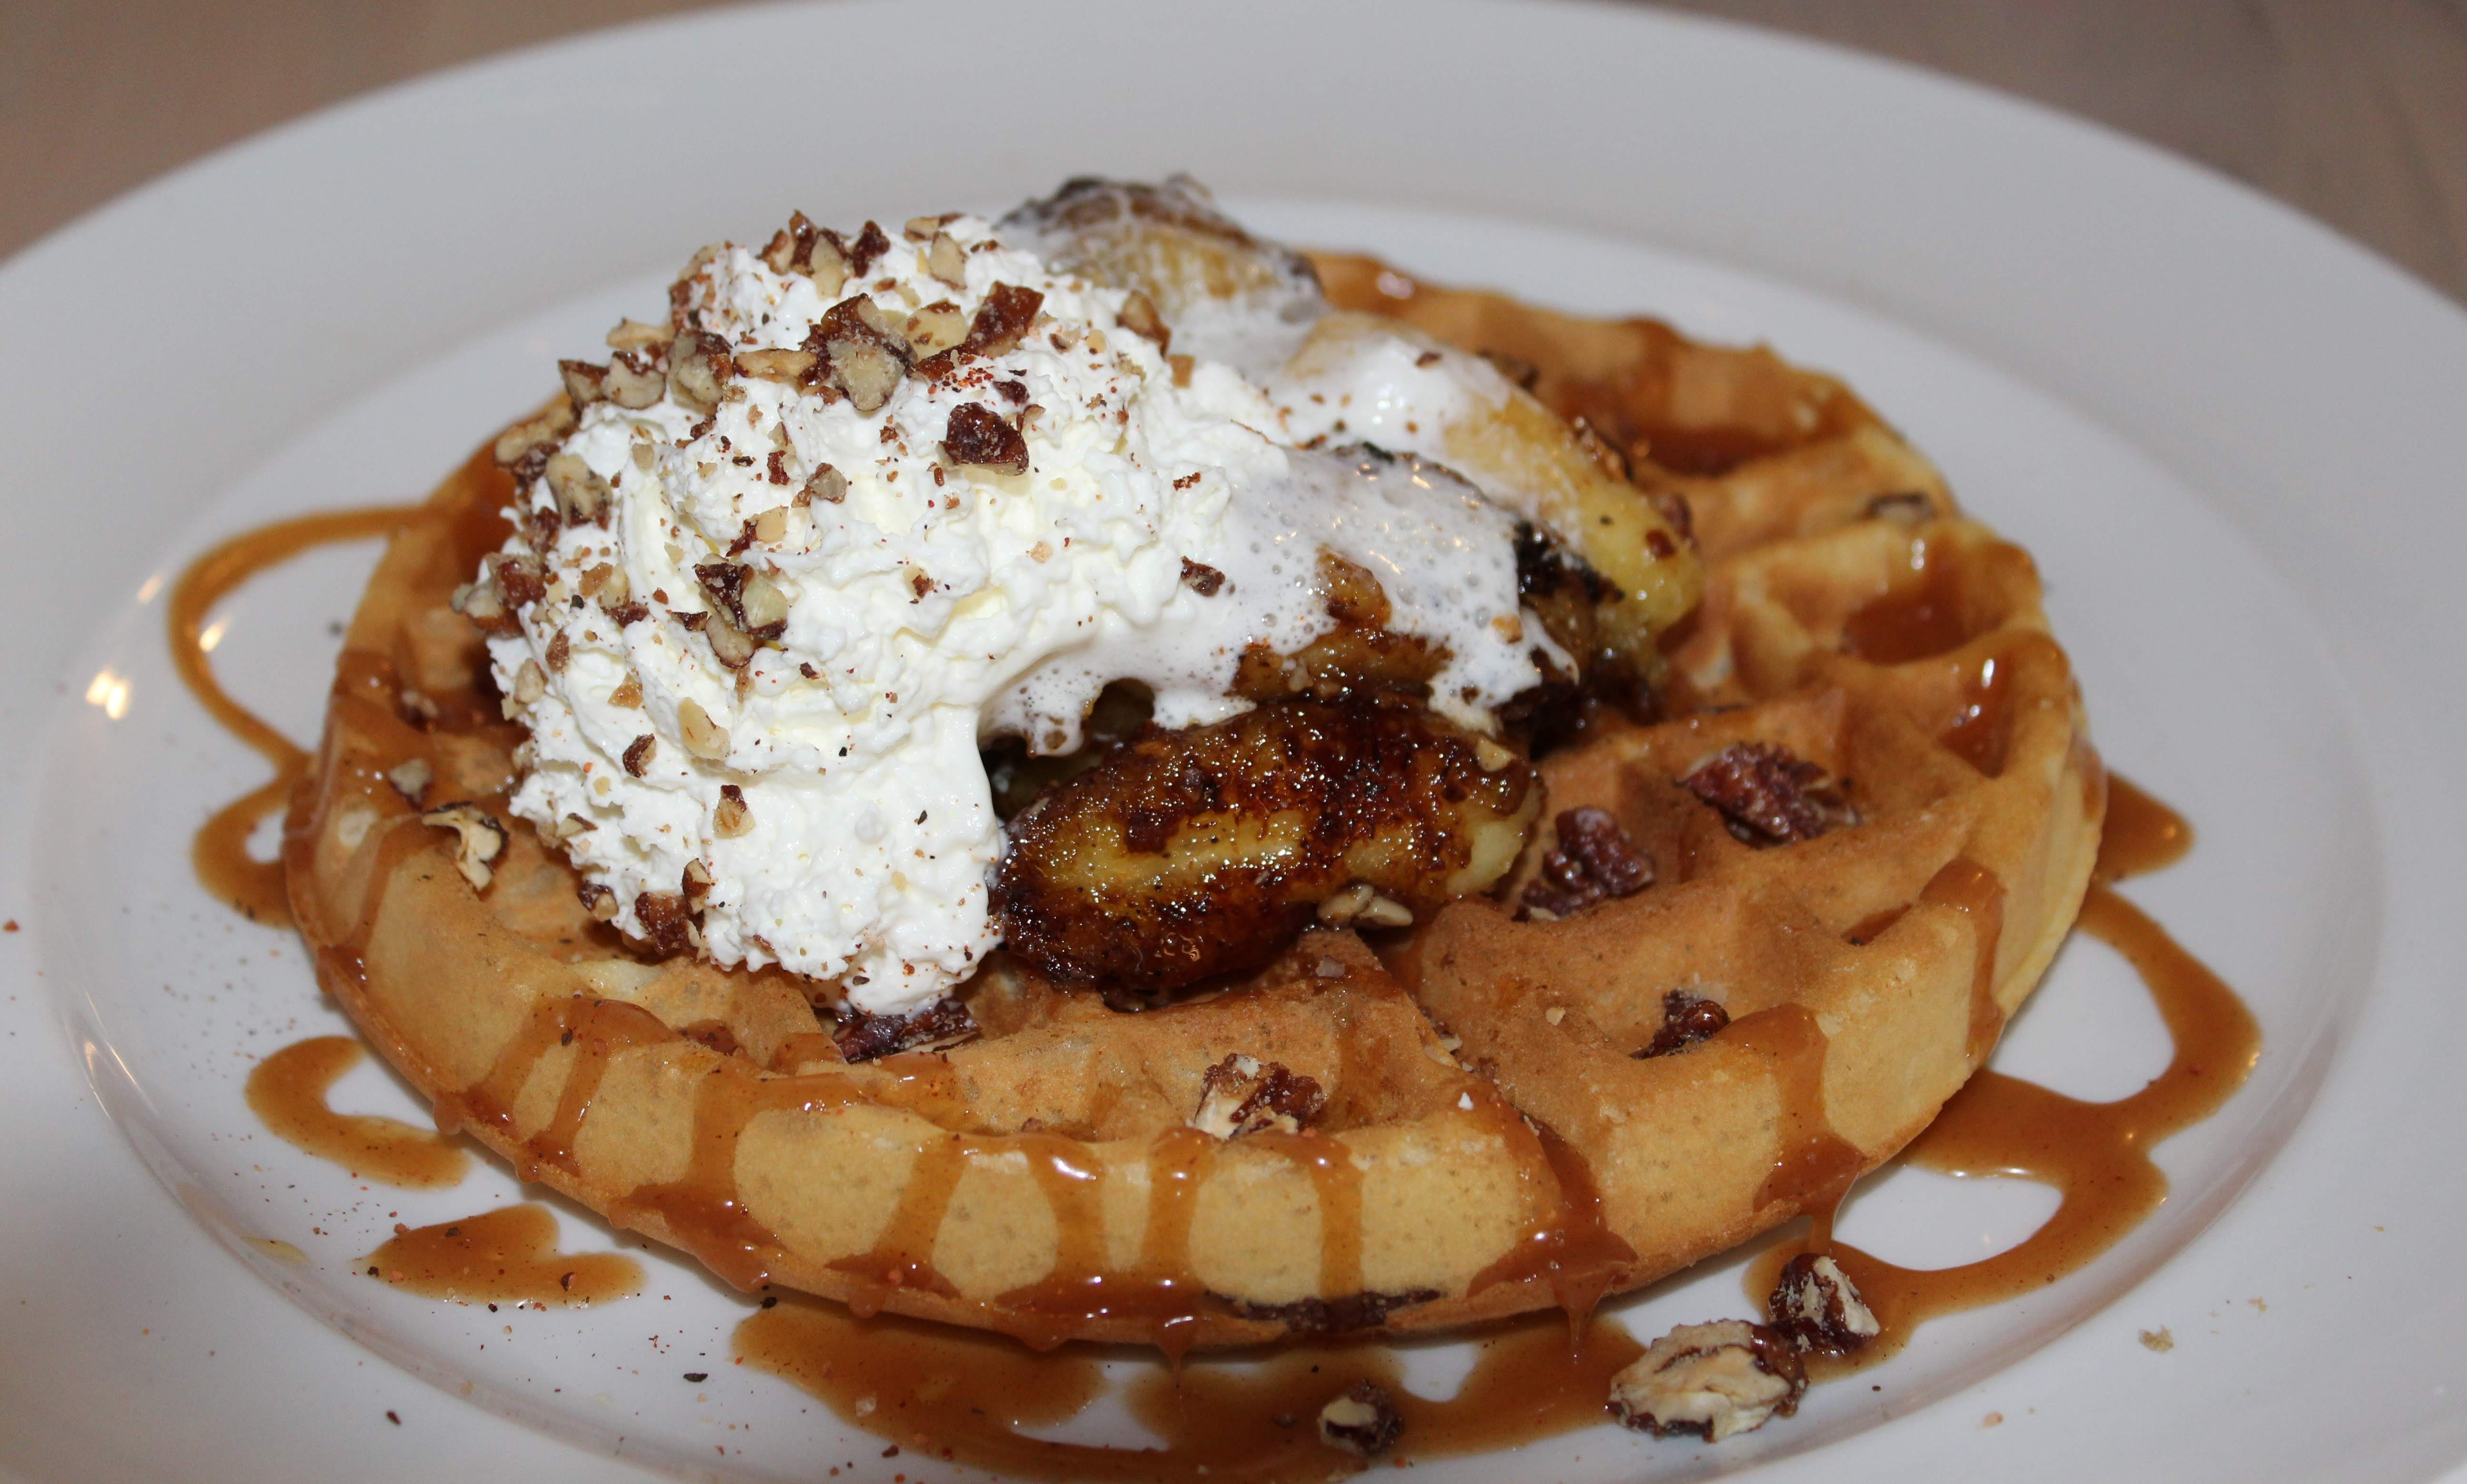 Photo of banana waffles from Lucky's Noble BBQ